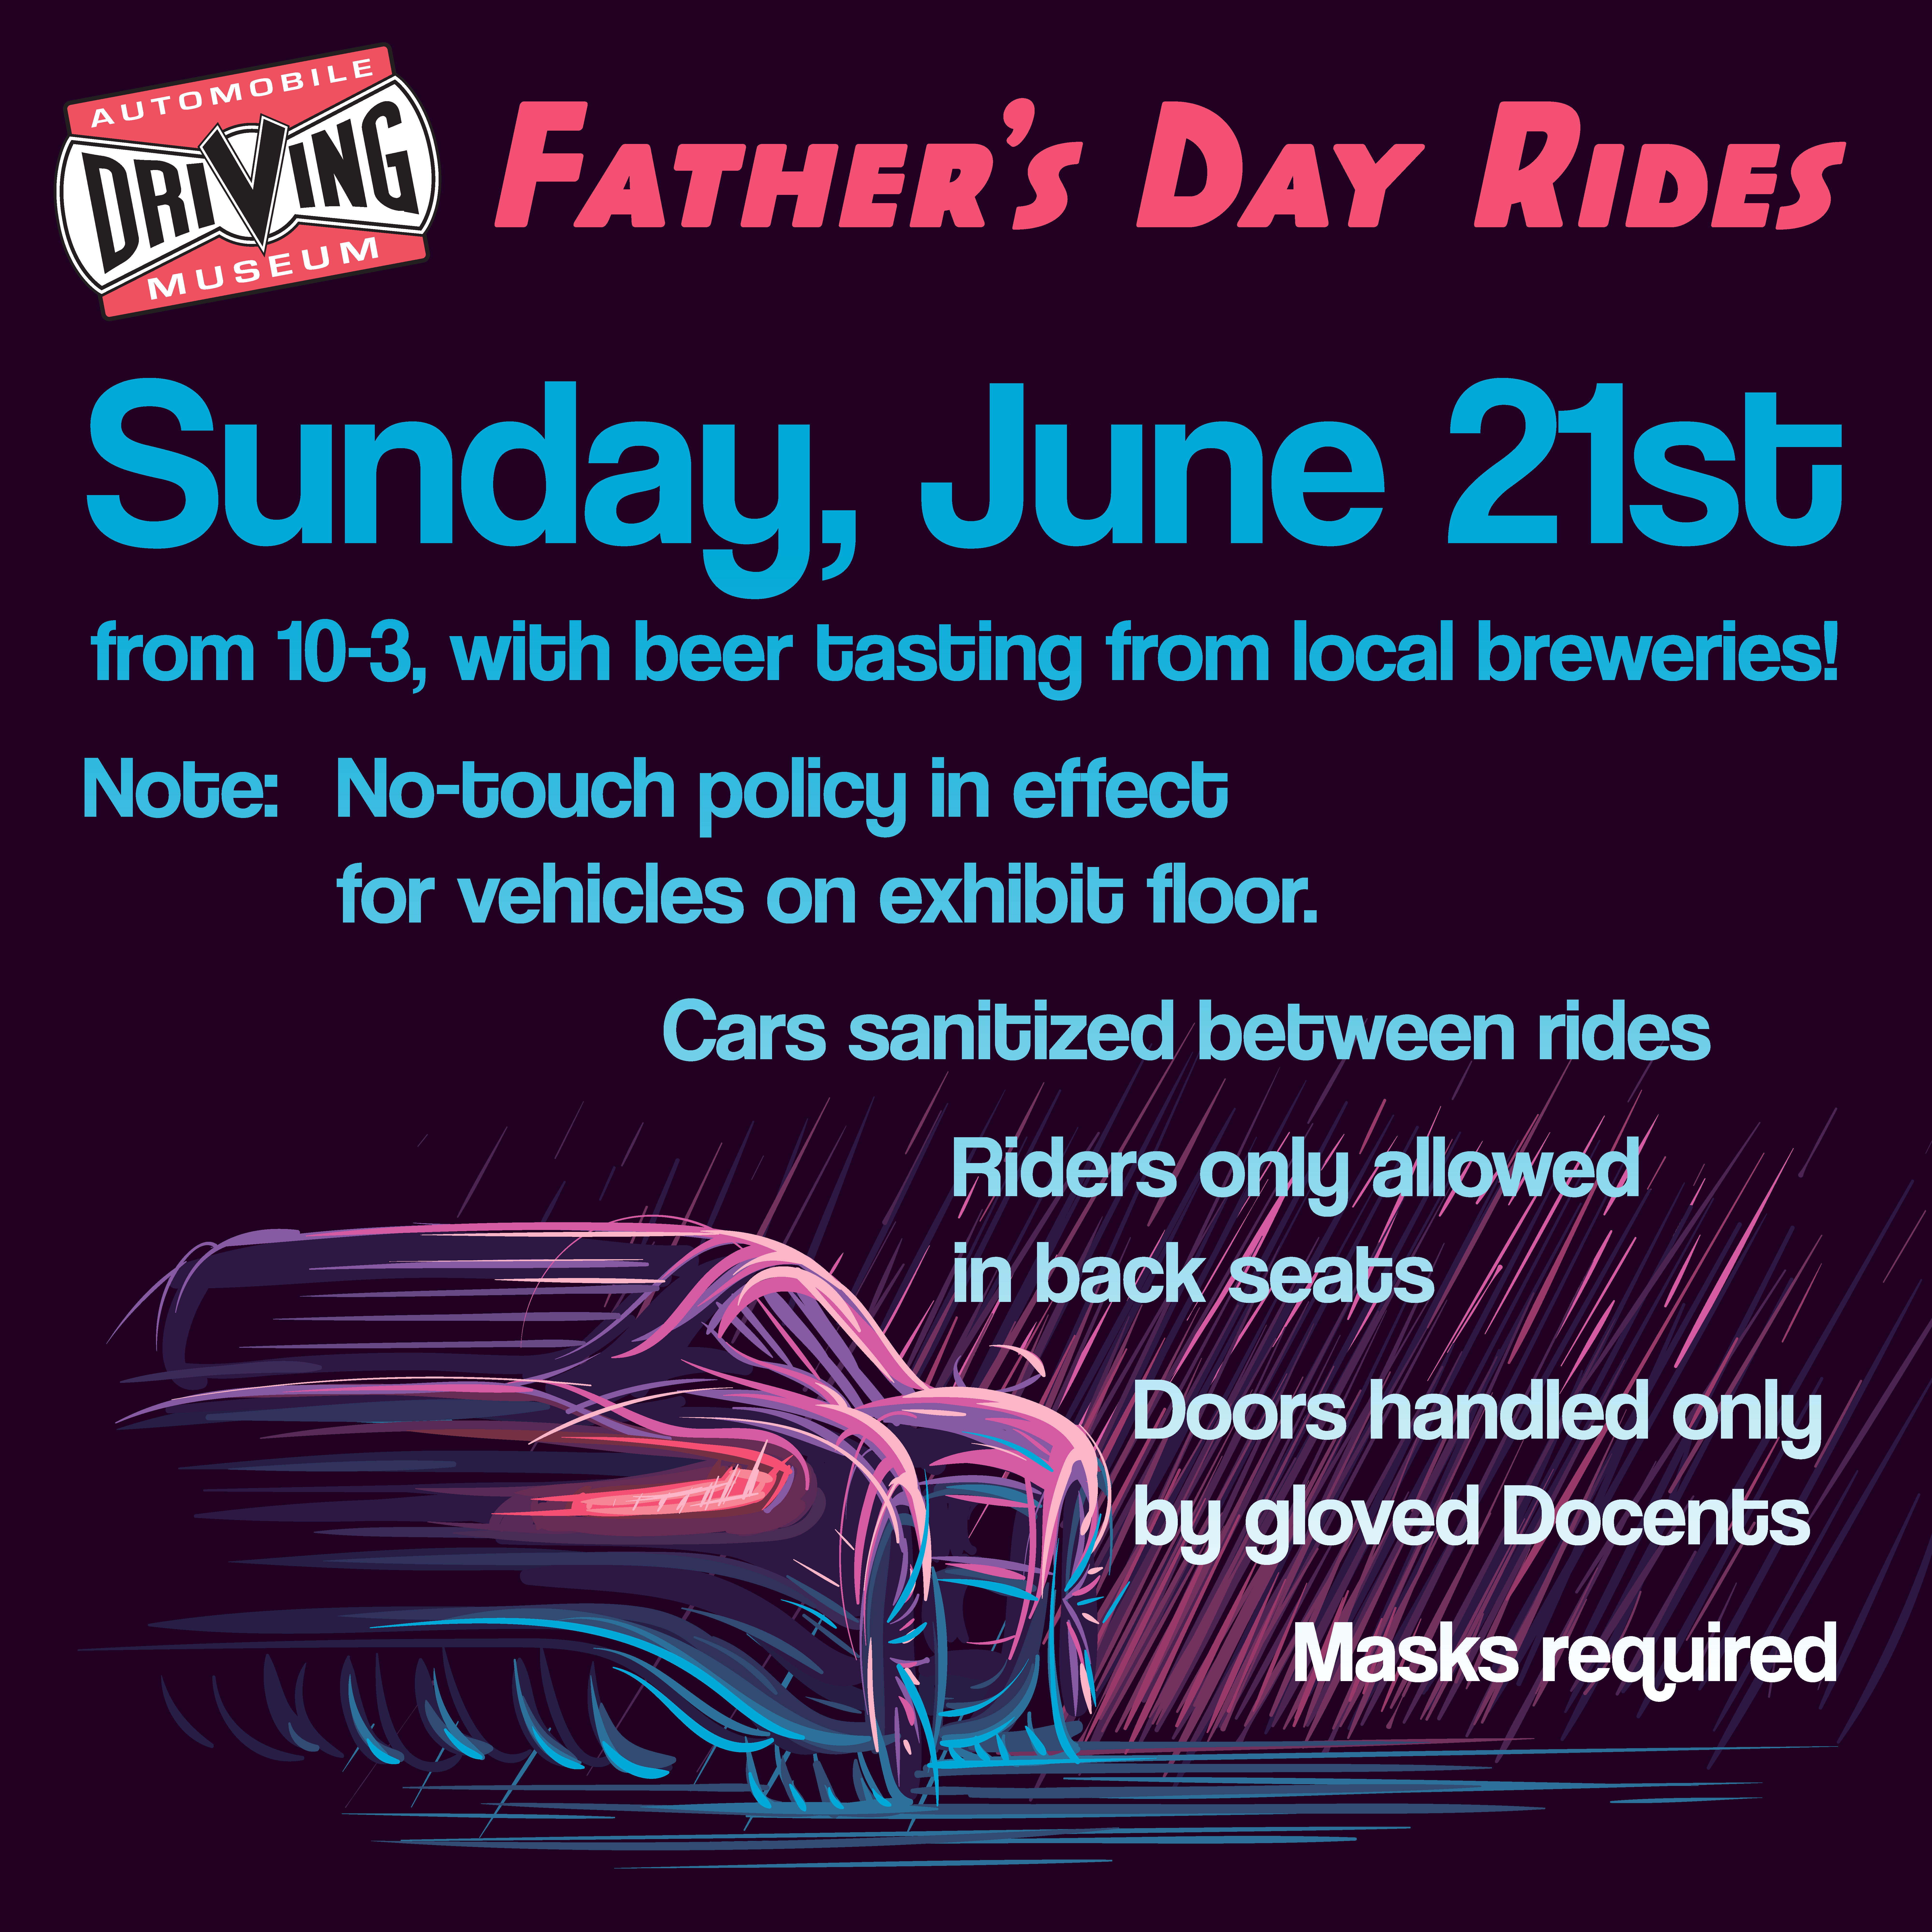 Father's day rides at the ADM